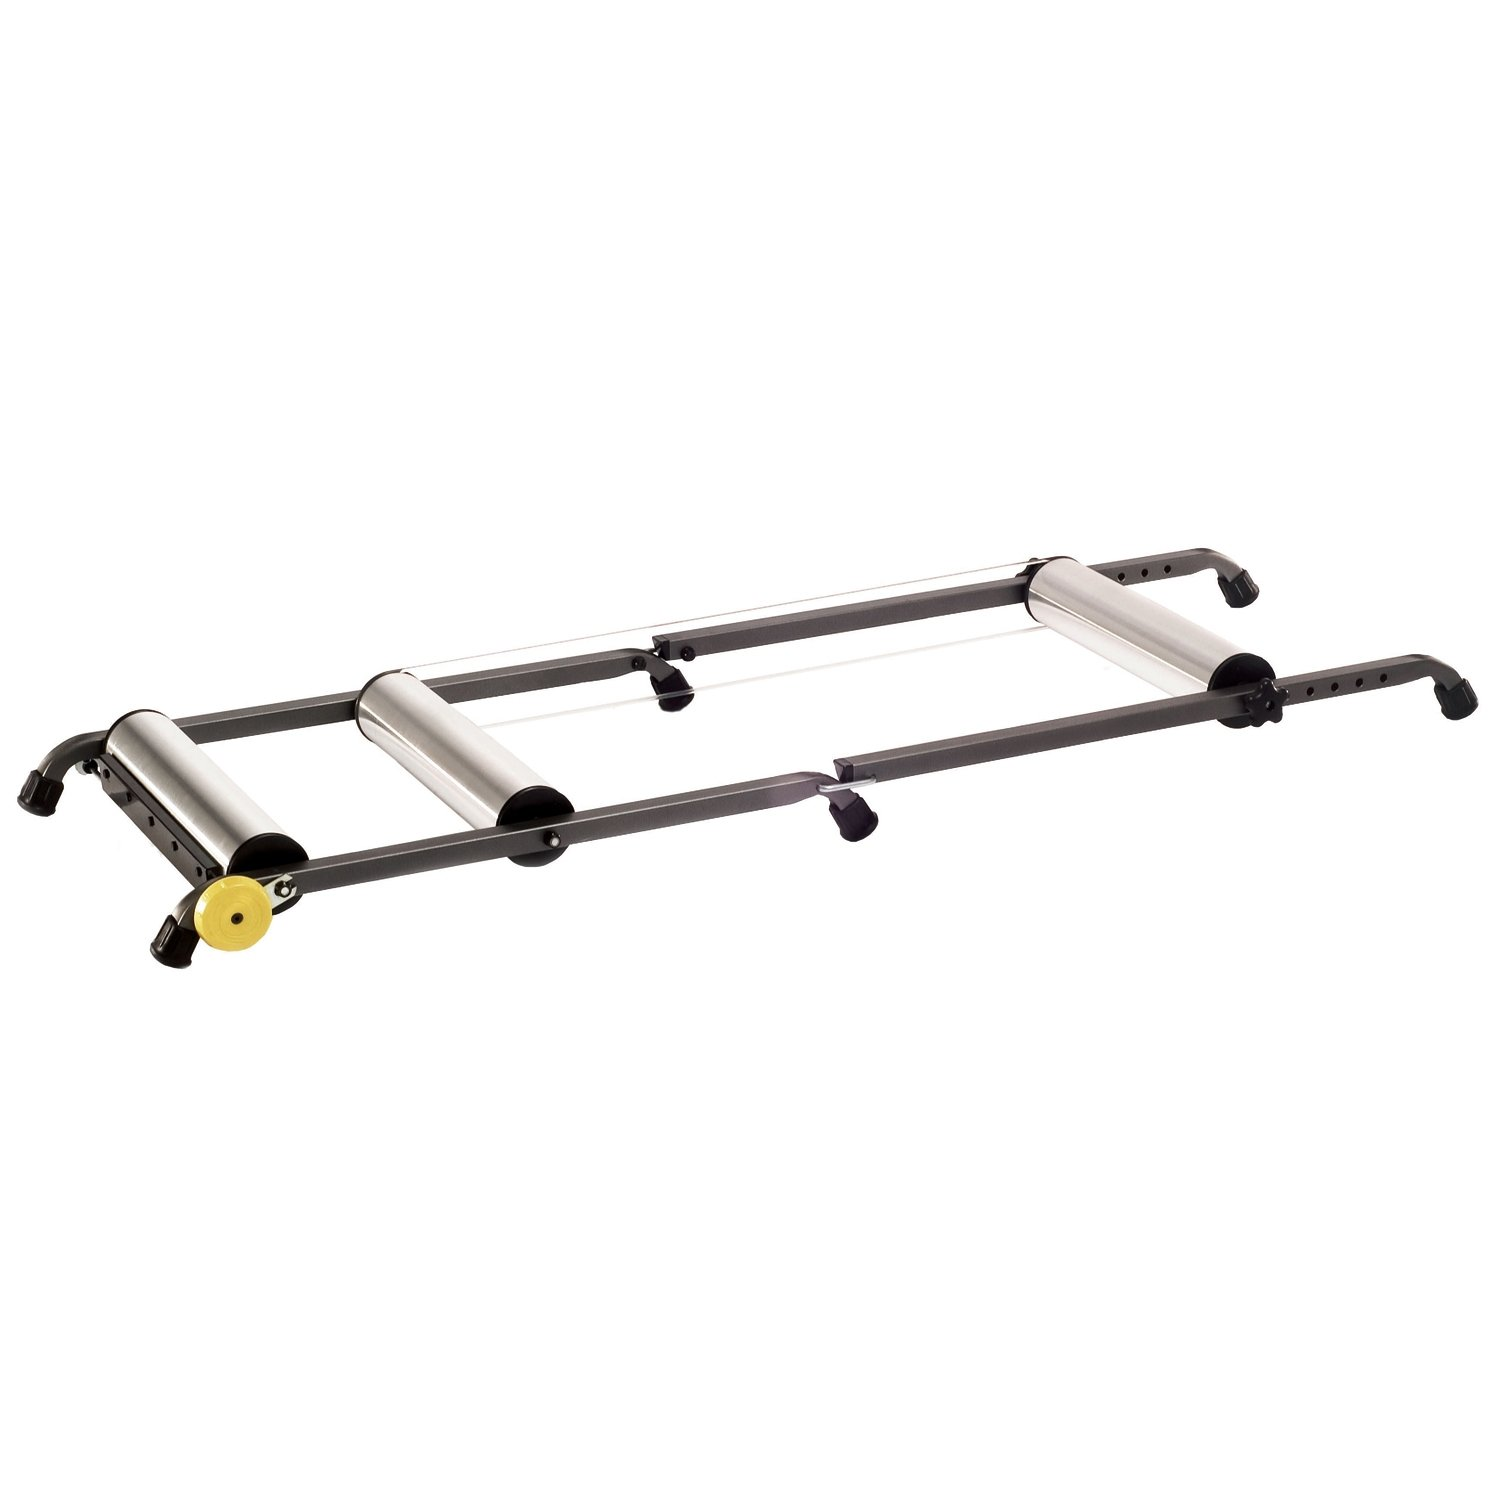 CycleOps Aluminum Rollers with Resistance